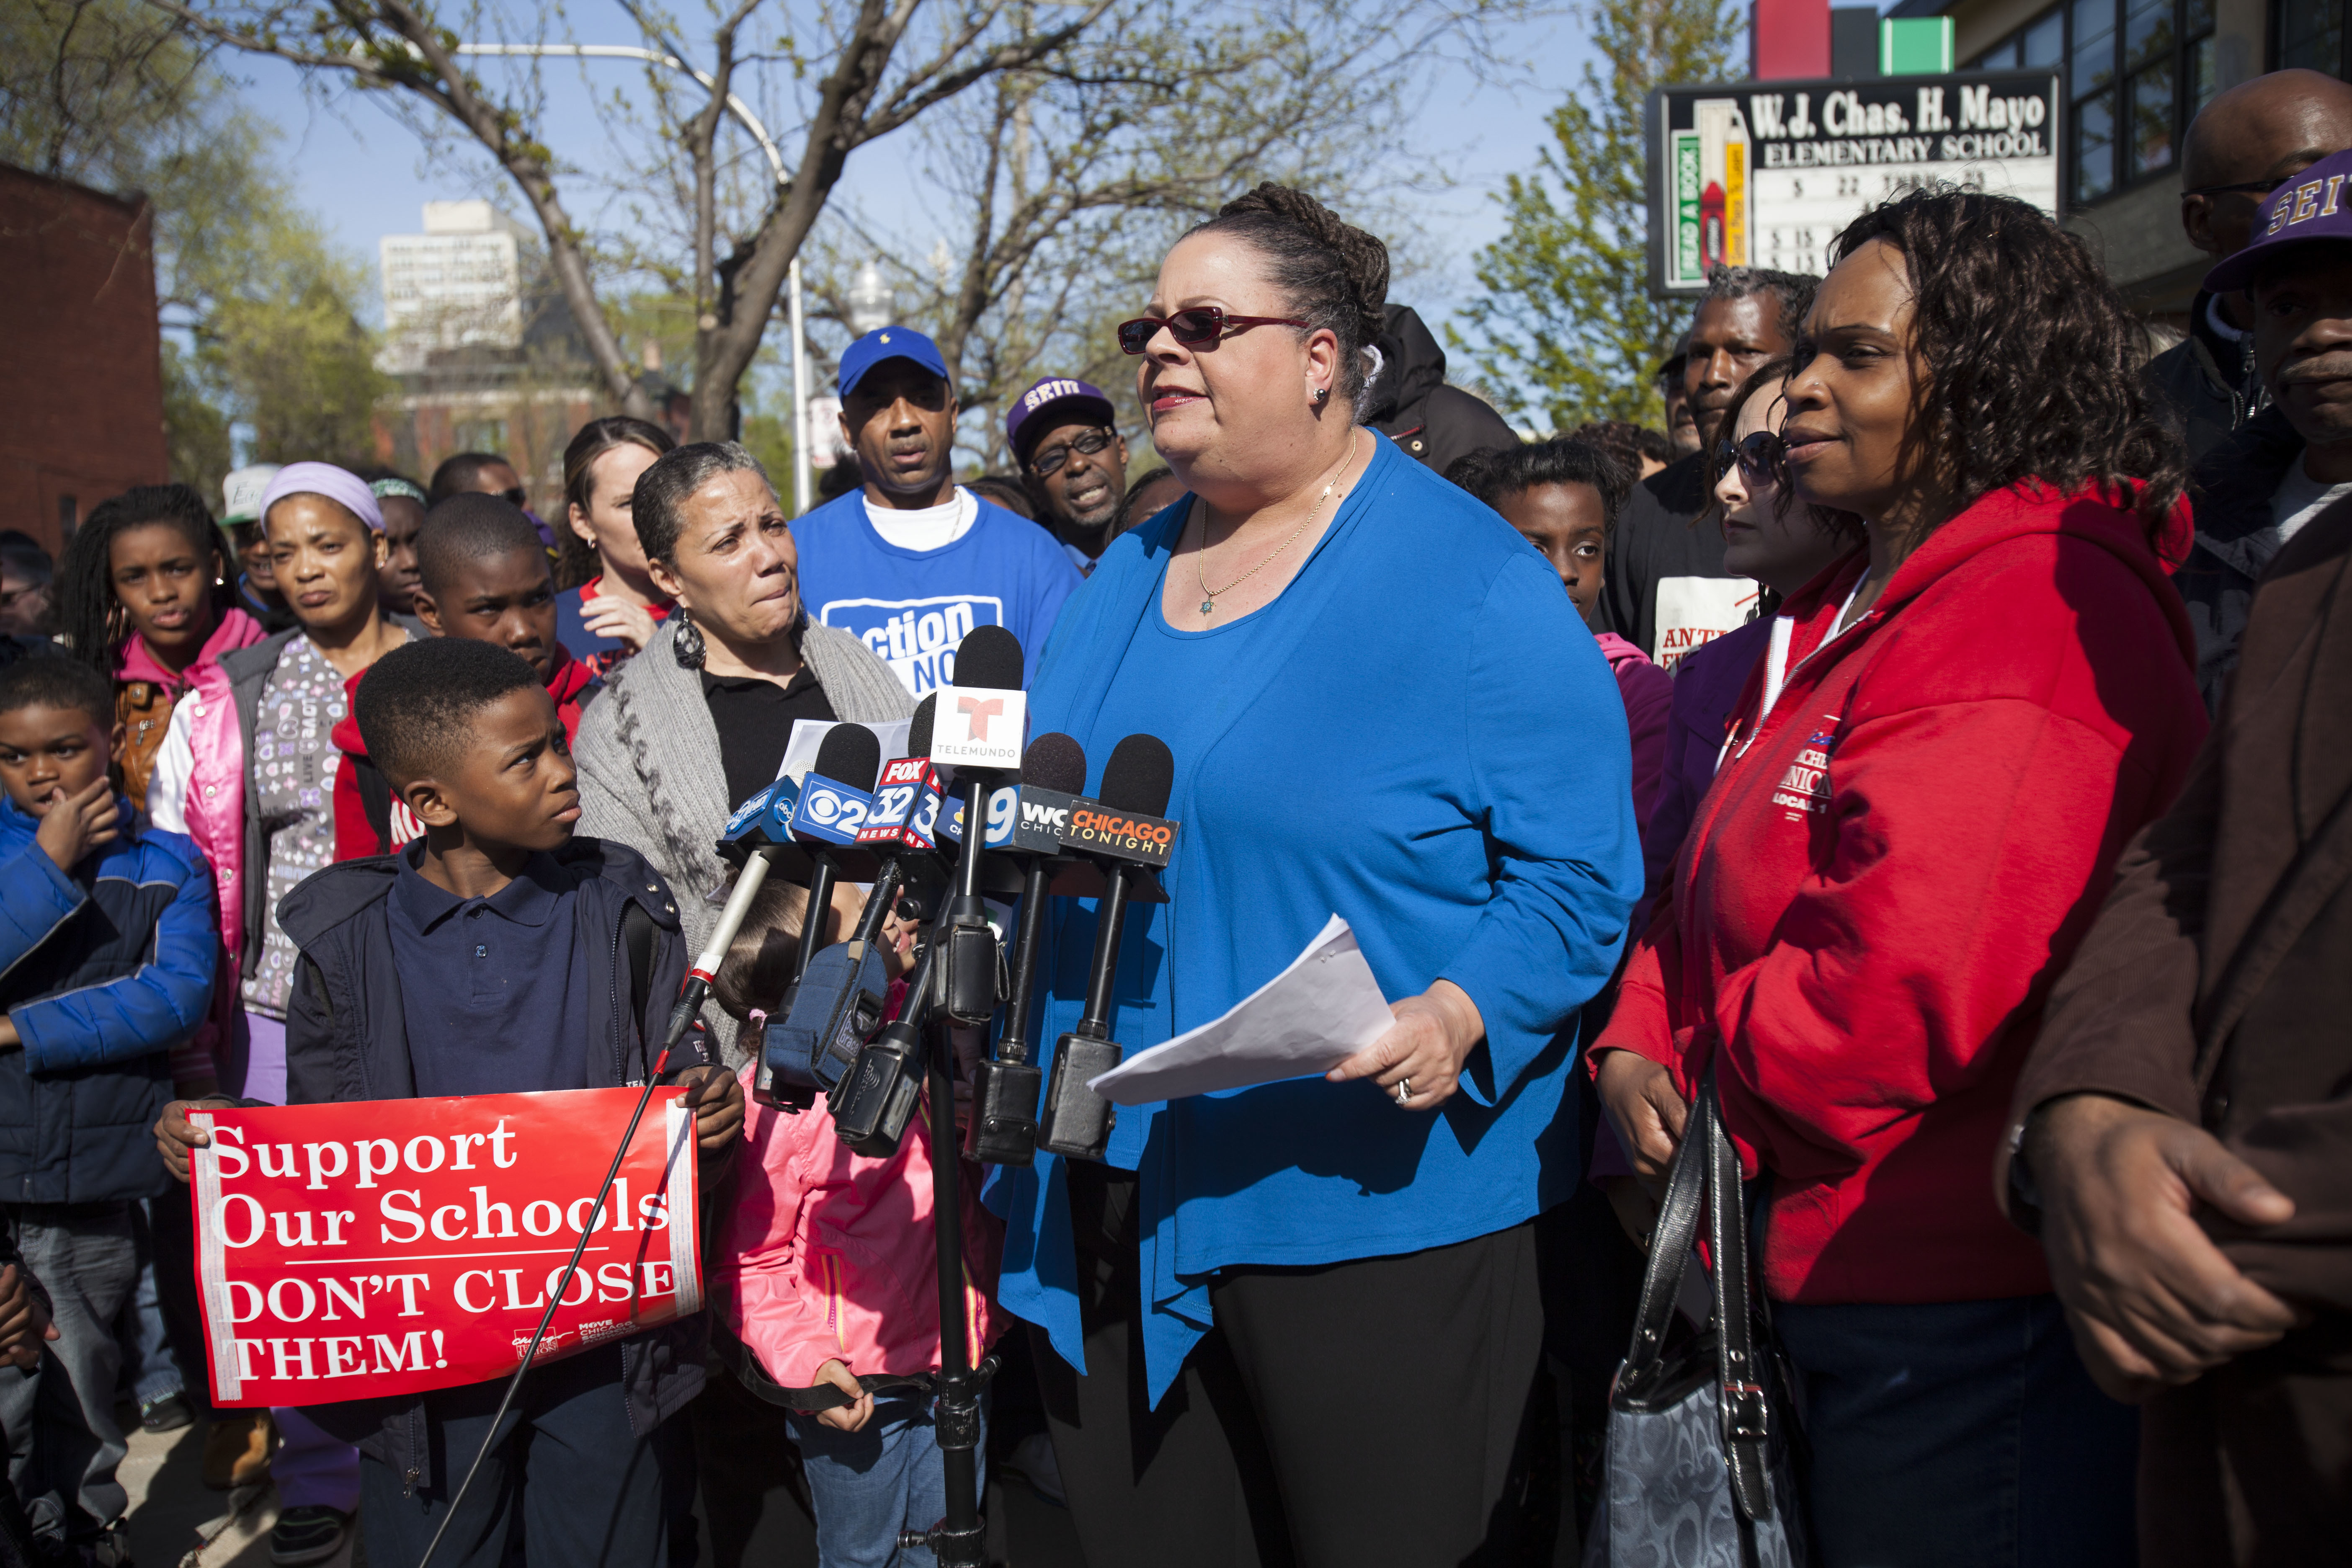 In this photo from May 2013, Chicago Teachers Union President Karen Lewis is shown with parents, labor leaders, activists and students to discuss a march against school closings.